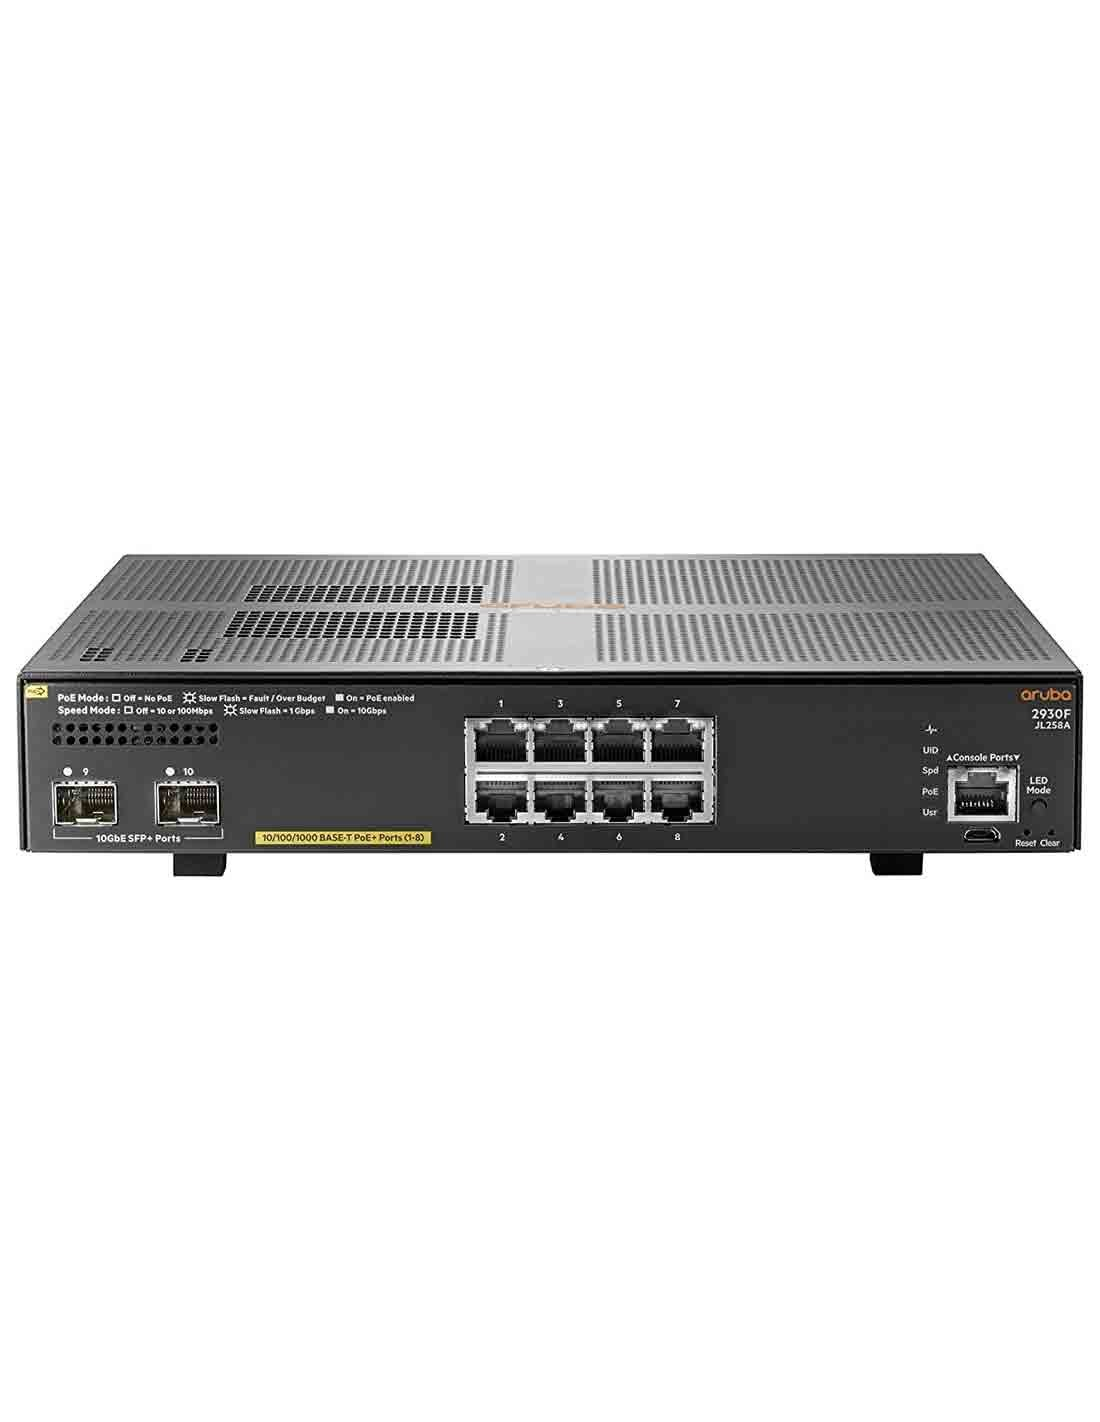 Aruba 2930F 8G PoE+ 2SFP+ Switch JL258A Images and Photos